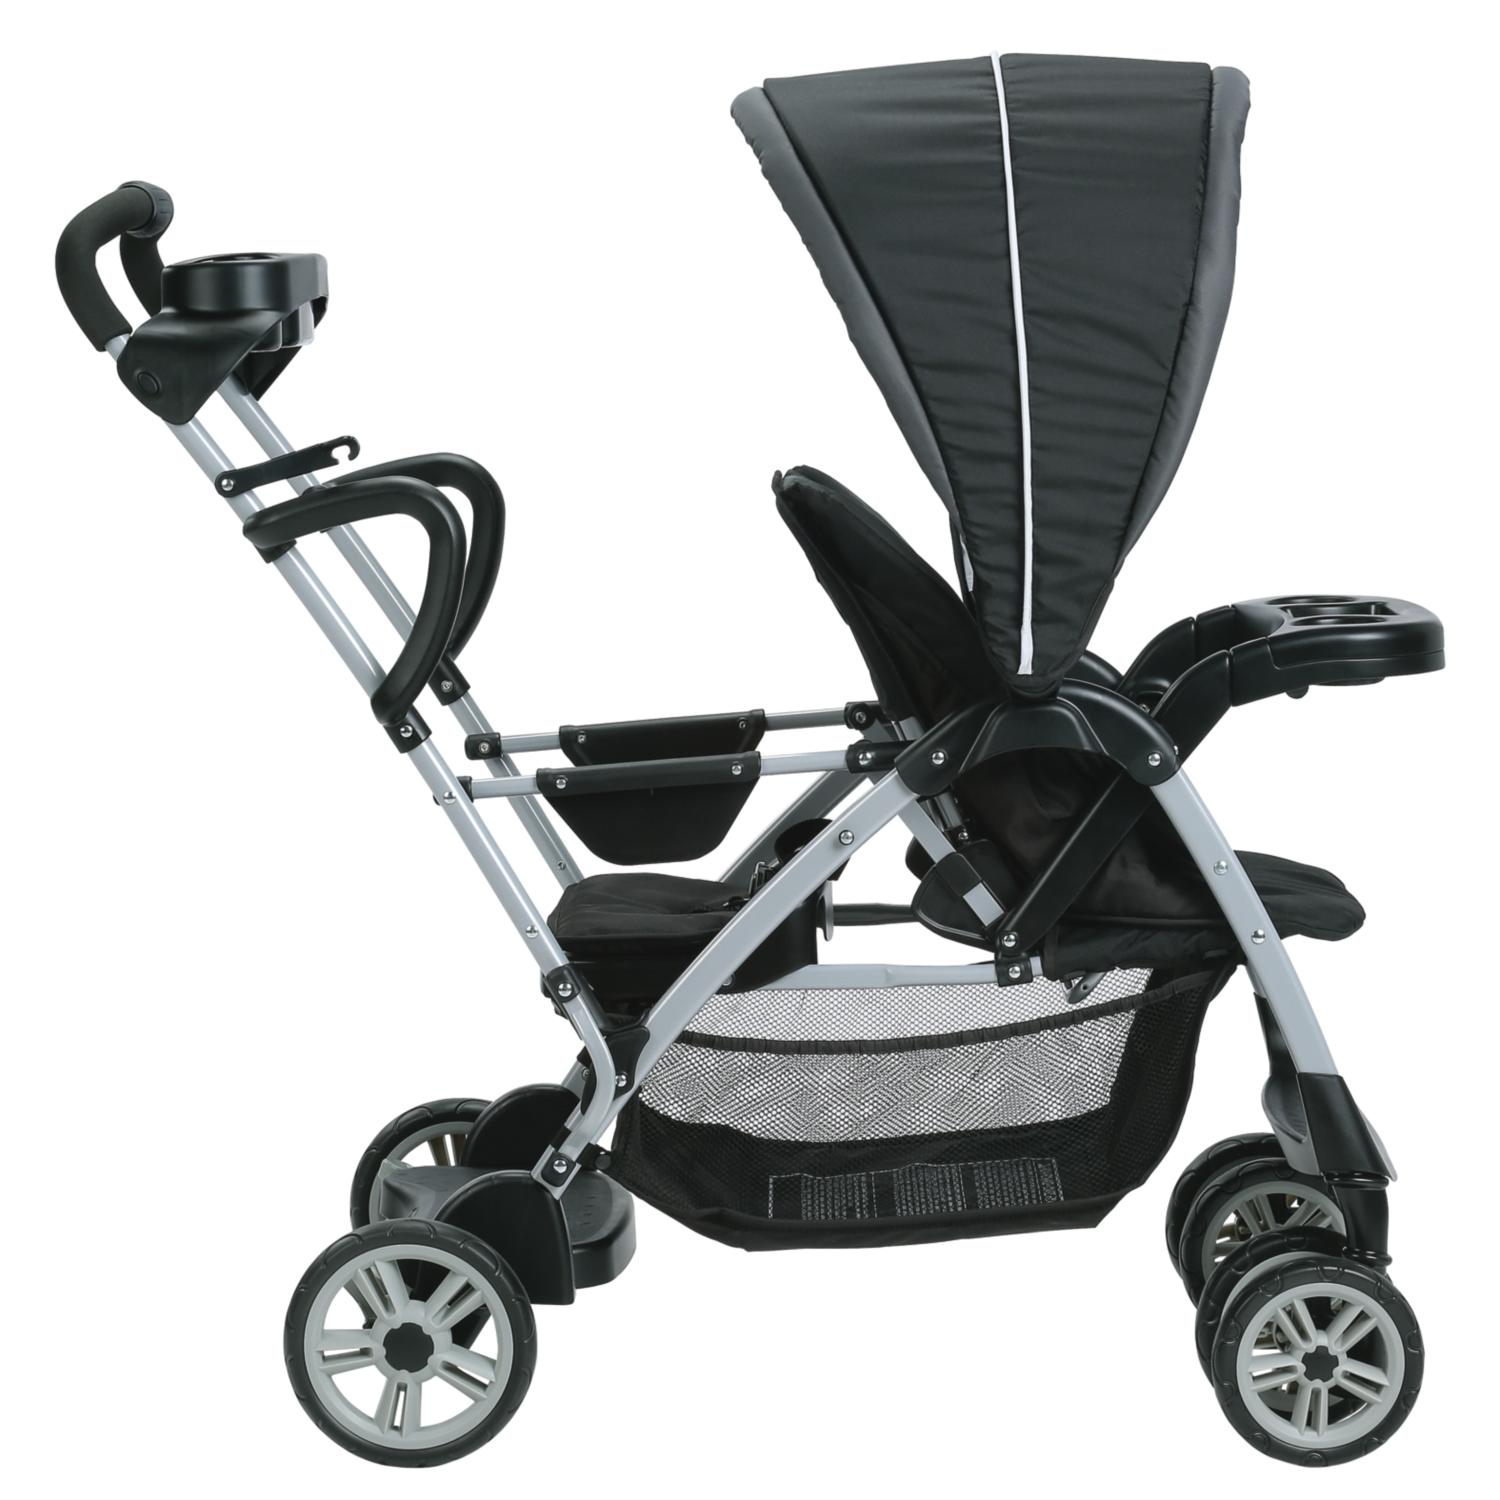 Amazon.com : Graco Roomfor2 Click Connect Stand and Ride